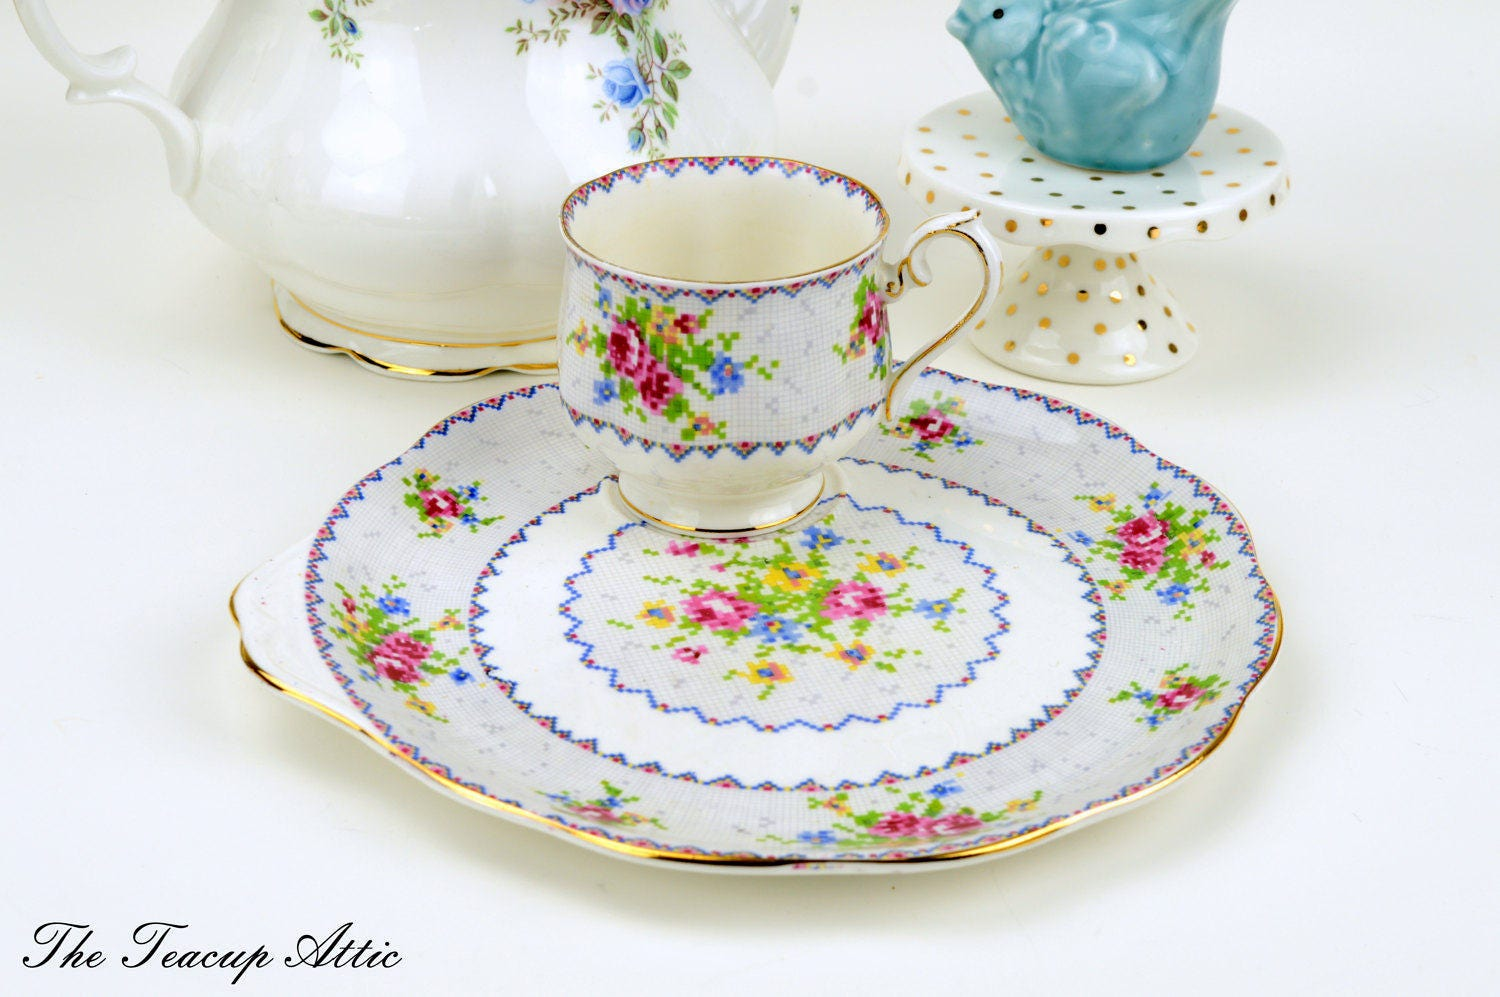 Royal Albert Petit Point Tennis Set With Teacup and Luncheon Plate, English Bone China Snack Set, Wedding Gift,  ca. 1940